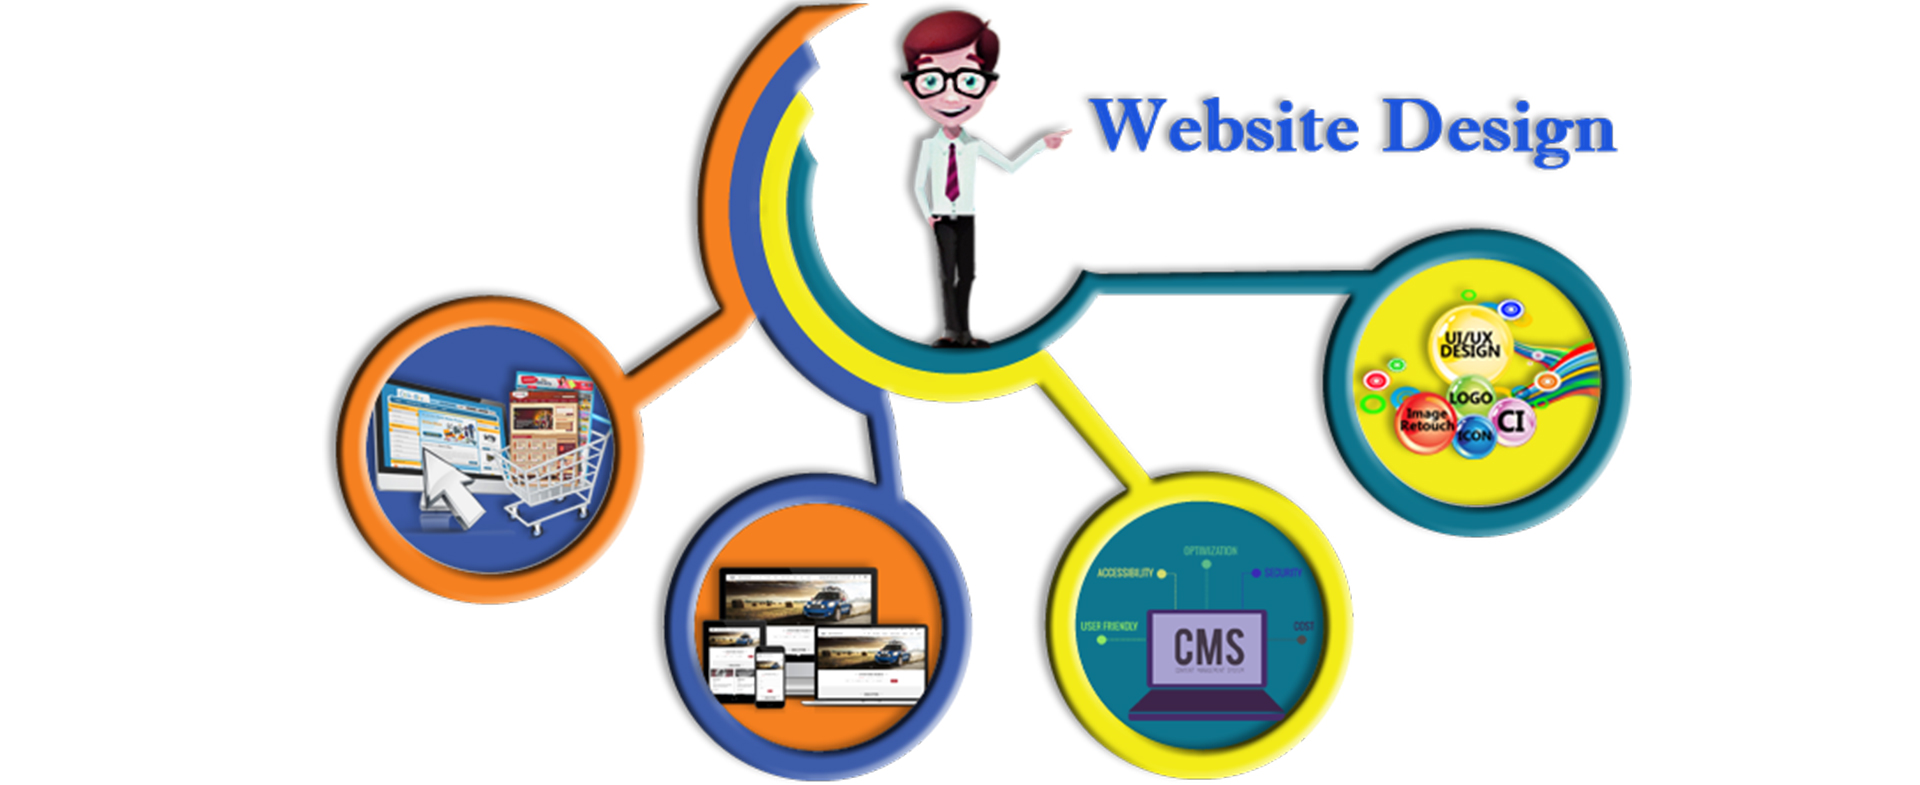 Website Design Services Company